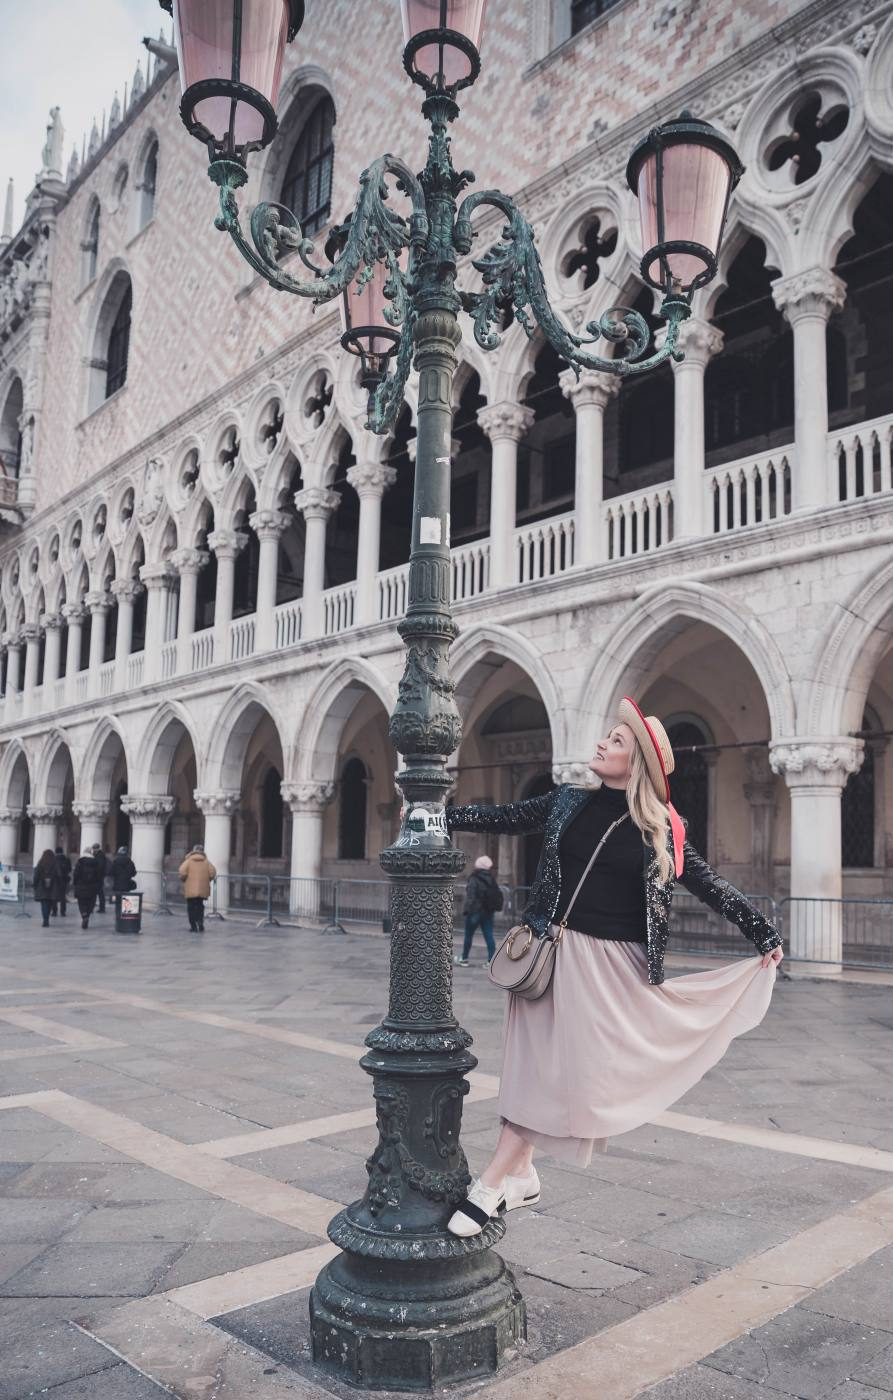 Most Instagrammable places in Venice